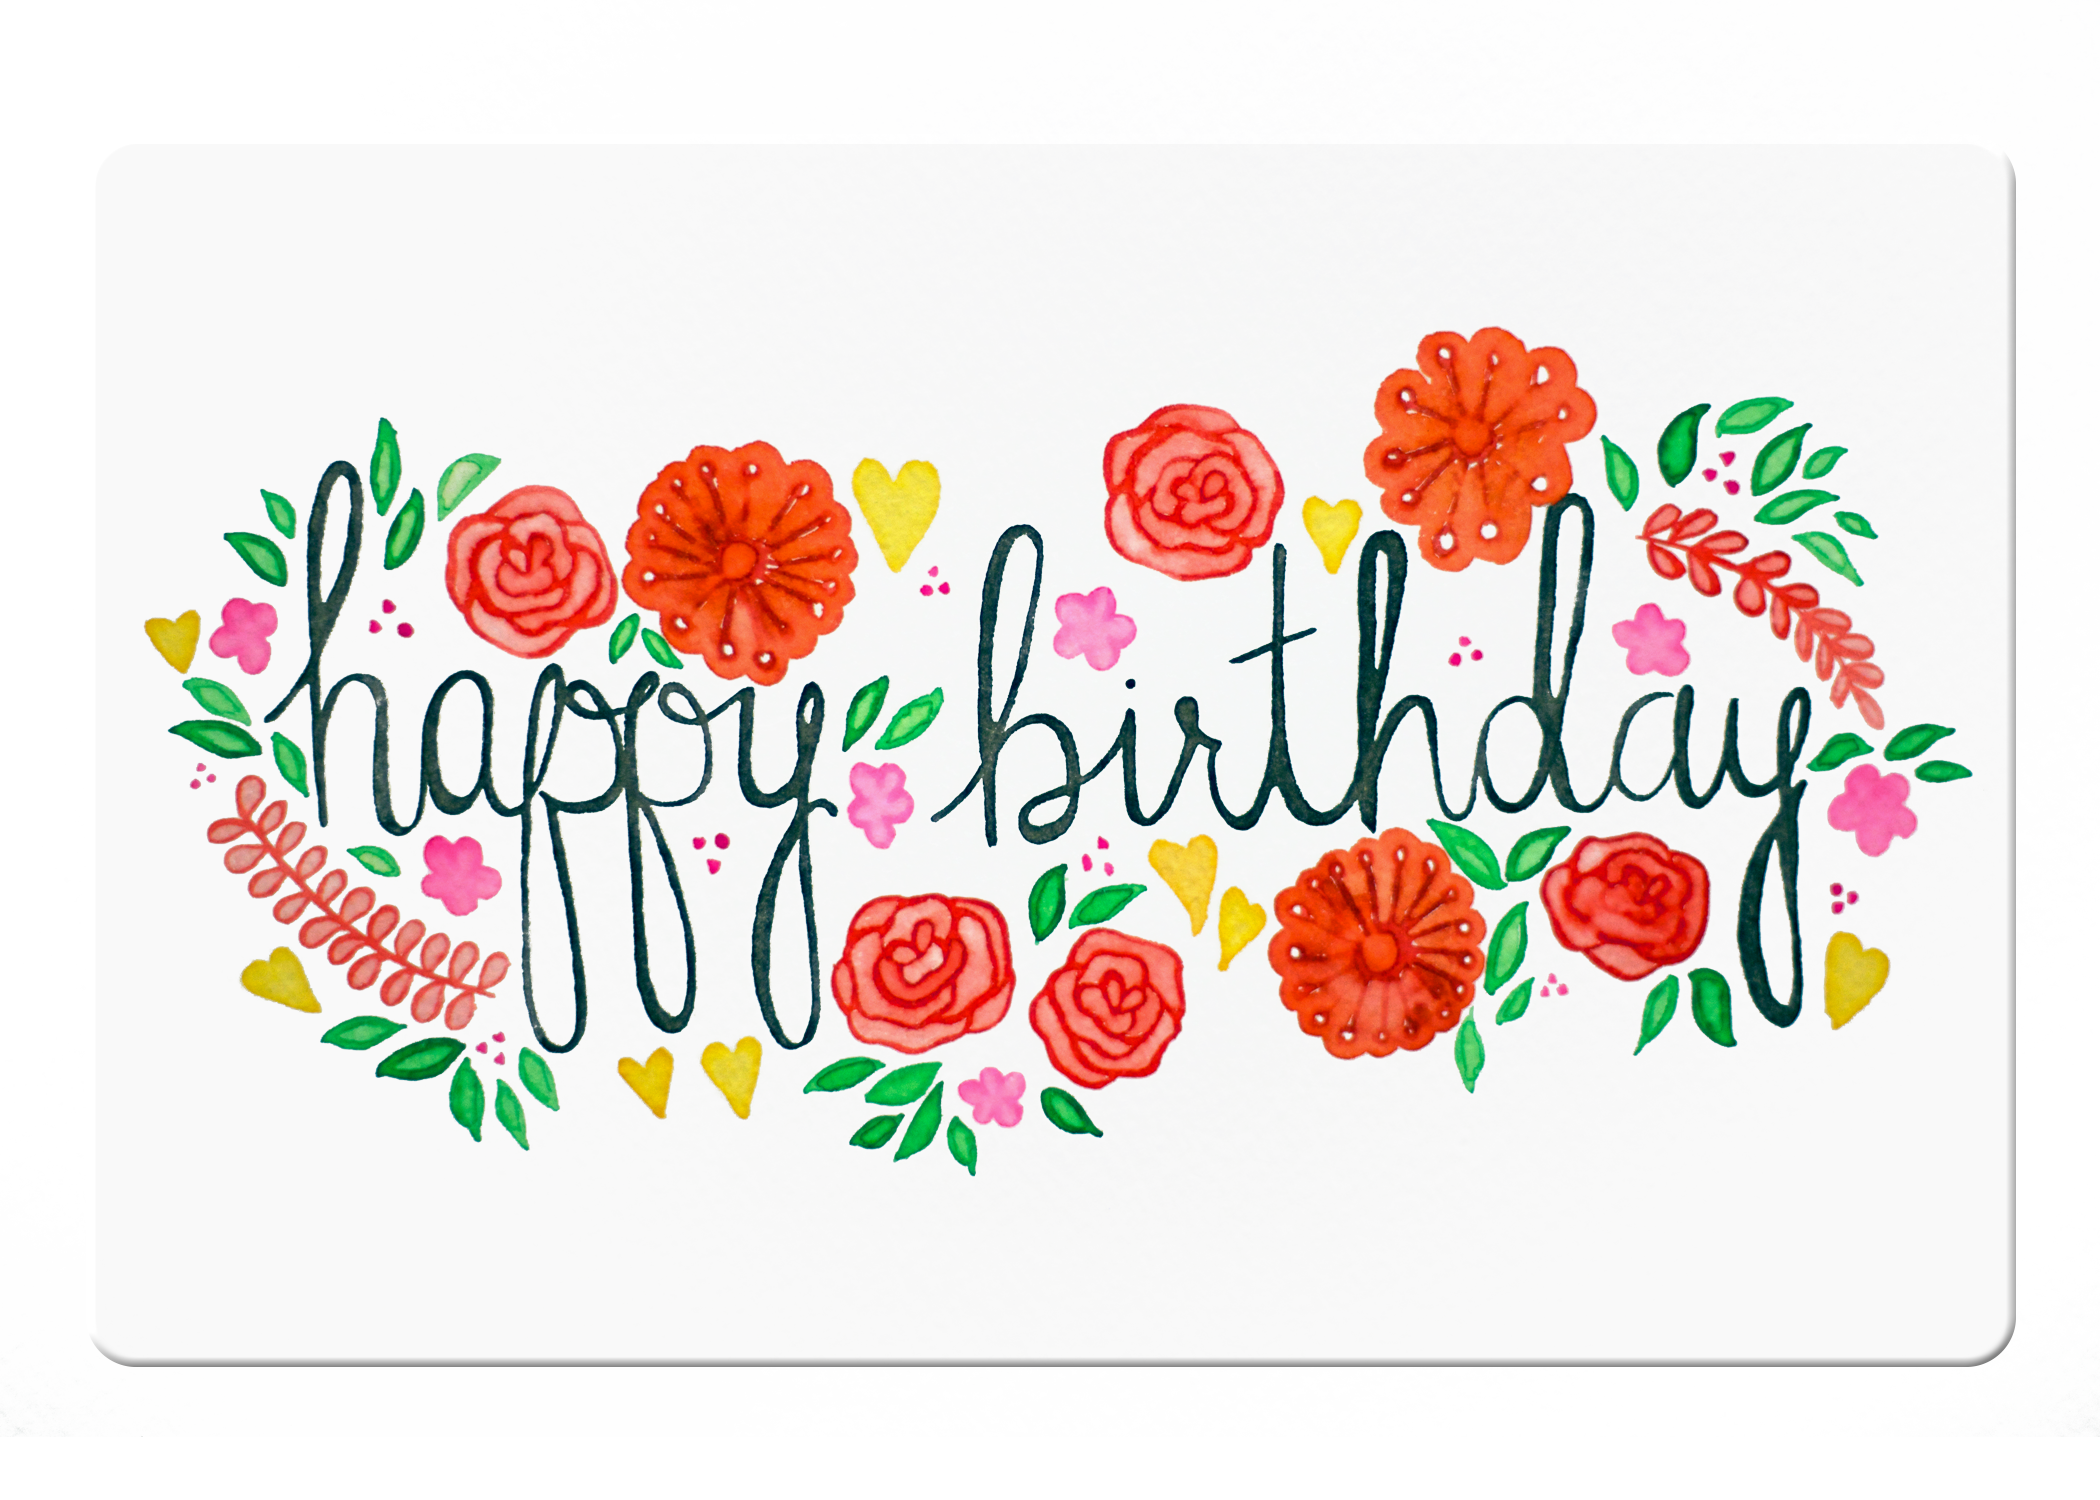 GIFT_CARD_HAPPY_BIRTHDAY3.png